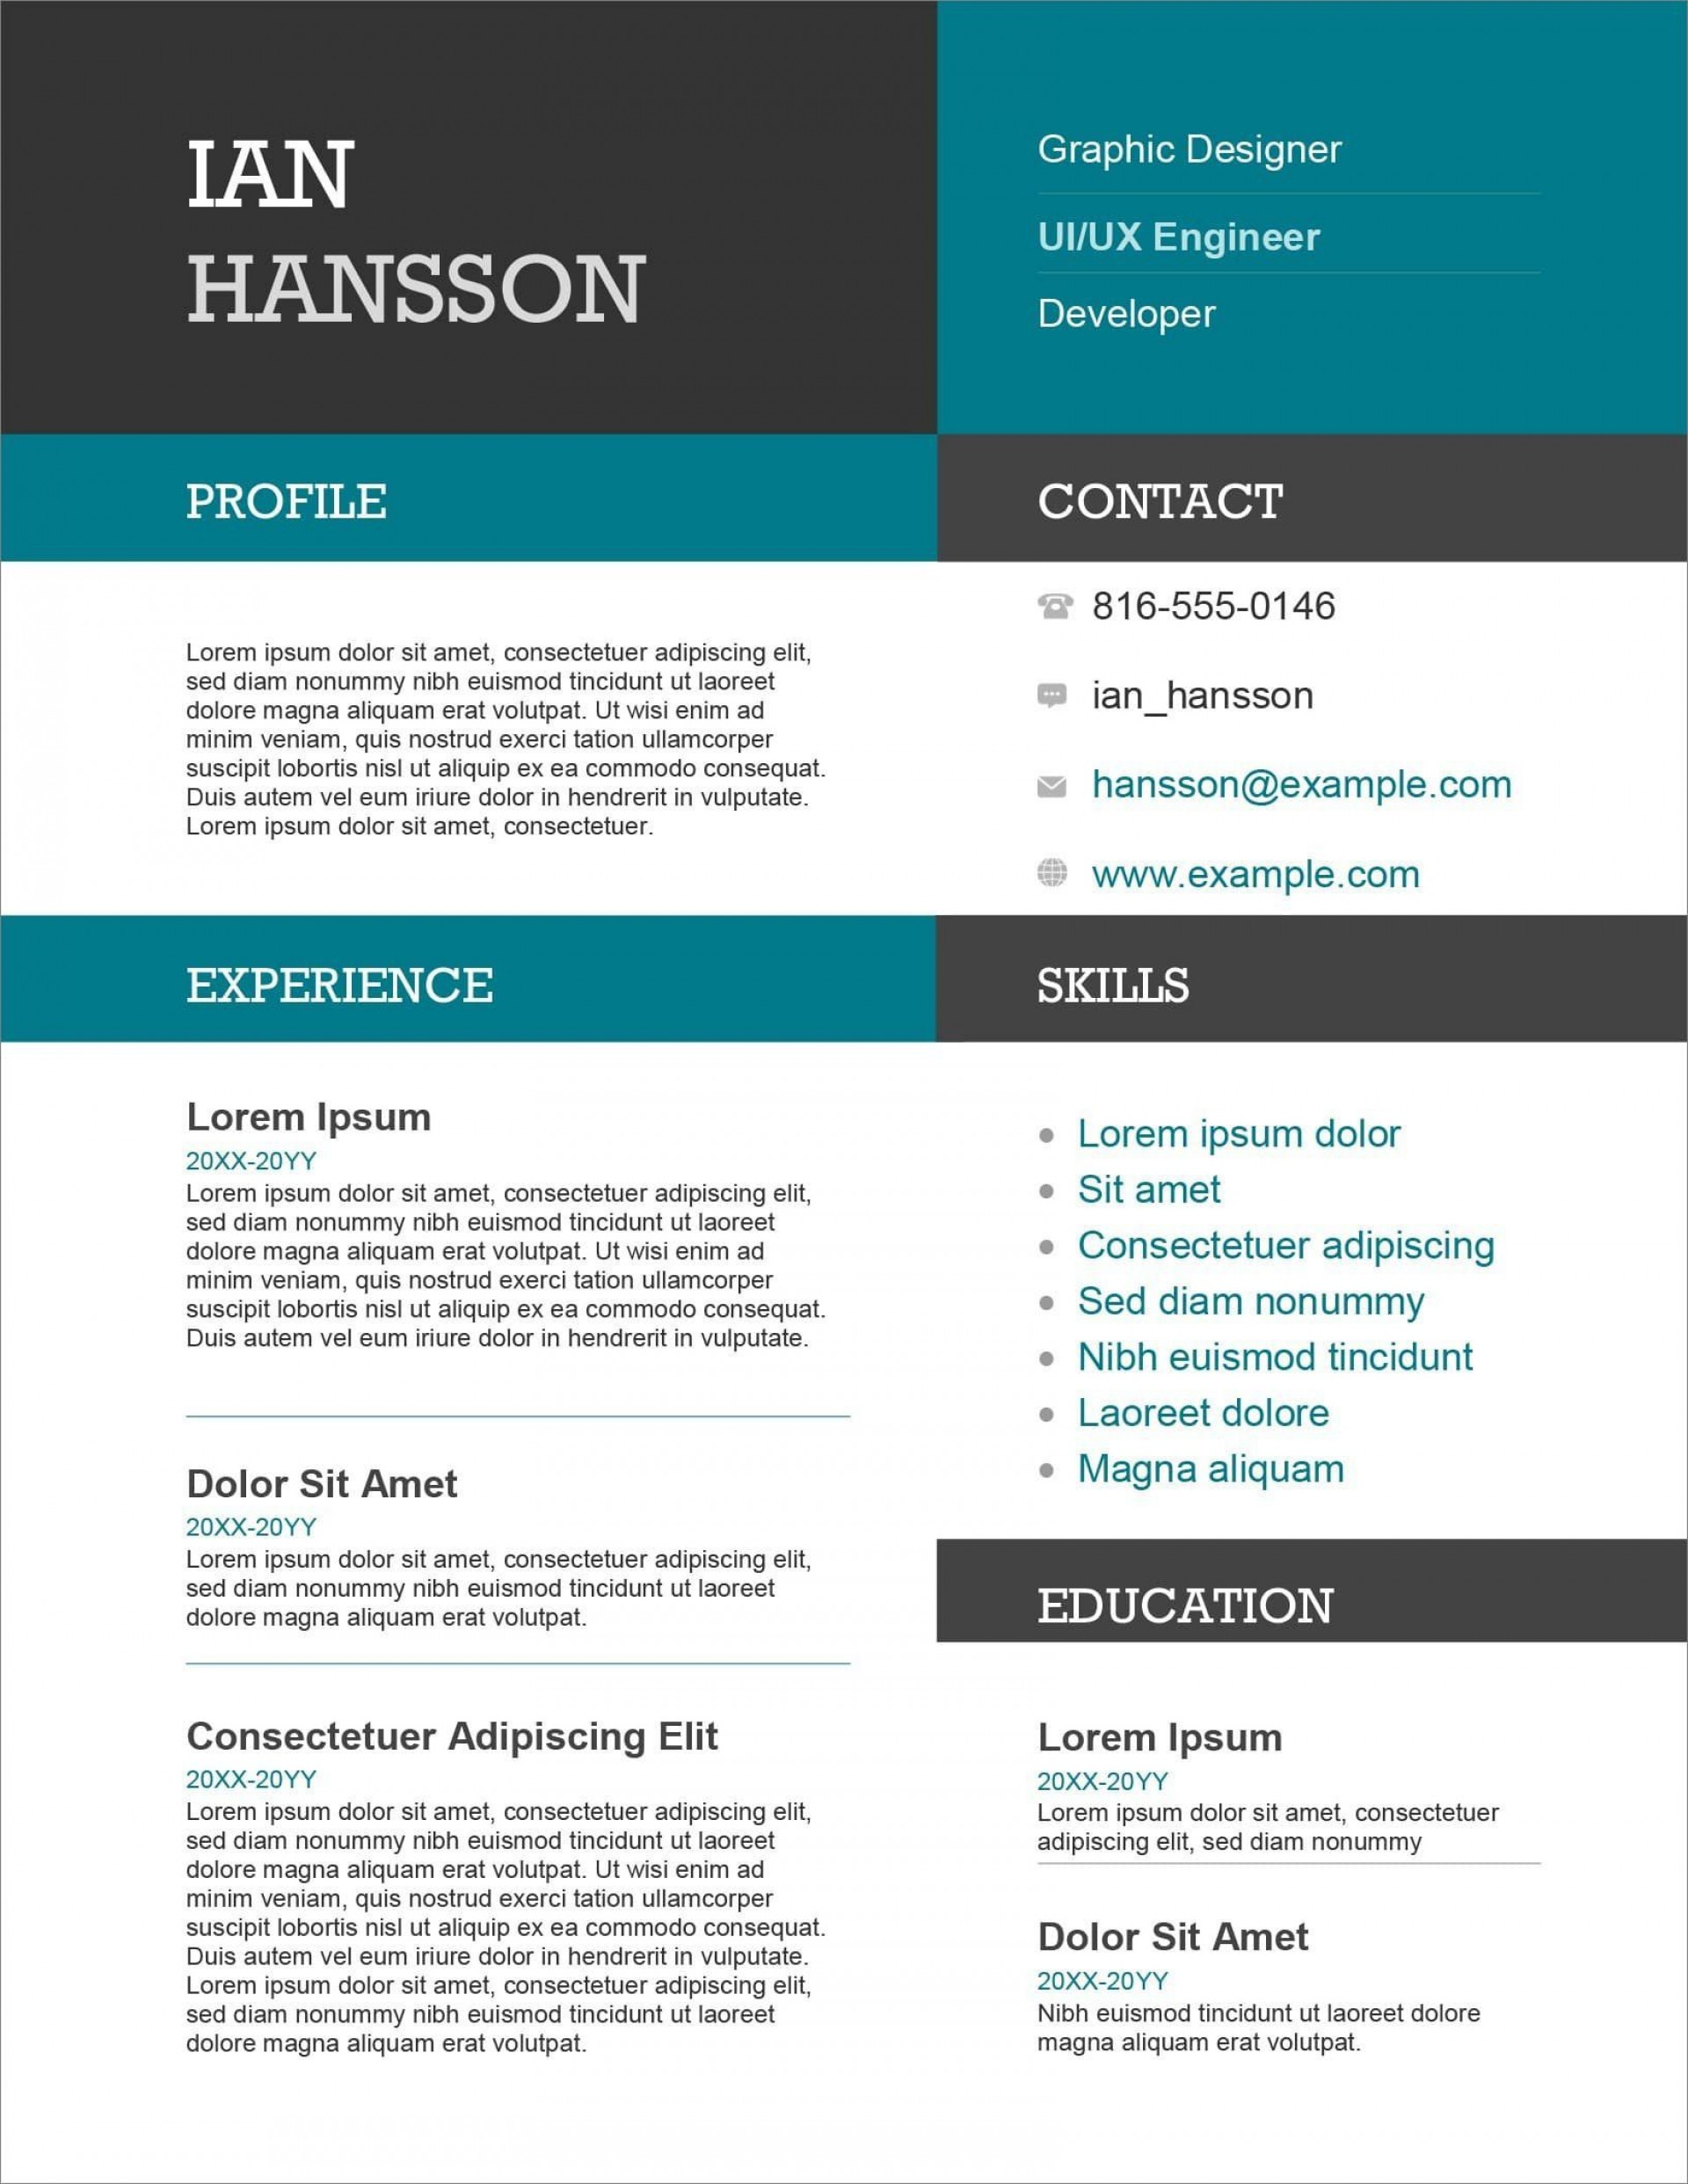 005 Awesome Resume Microsoft Word Template High Resolution  Cv/resume Design Tutorial With Federal Download1920